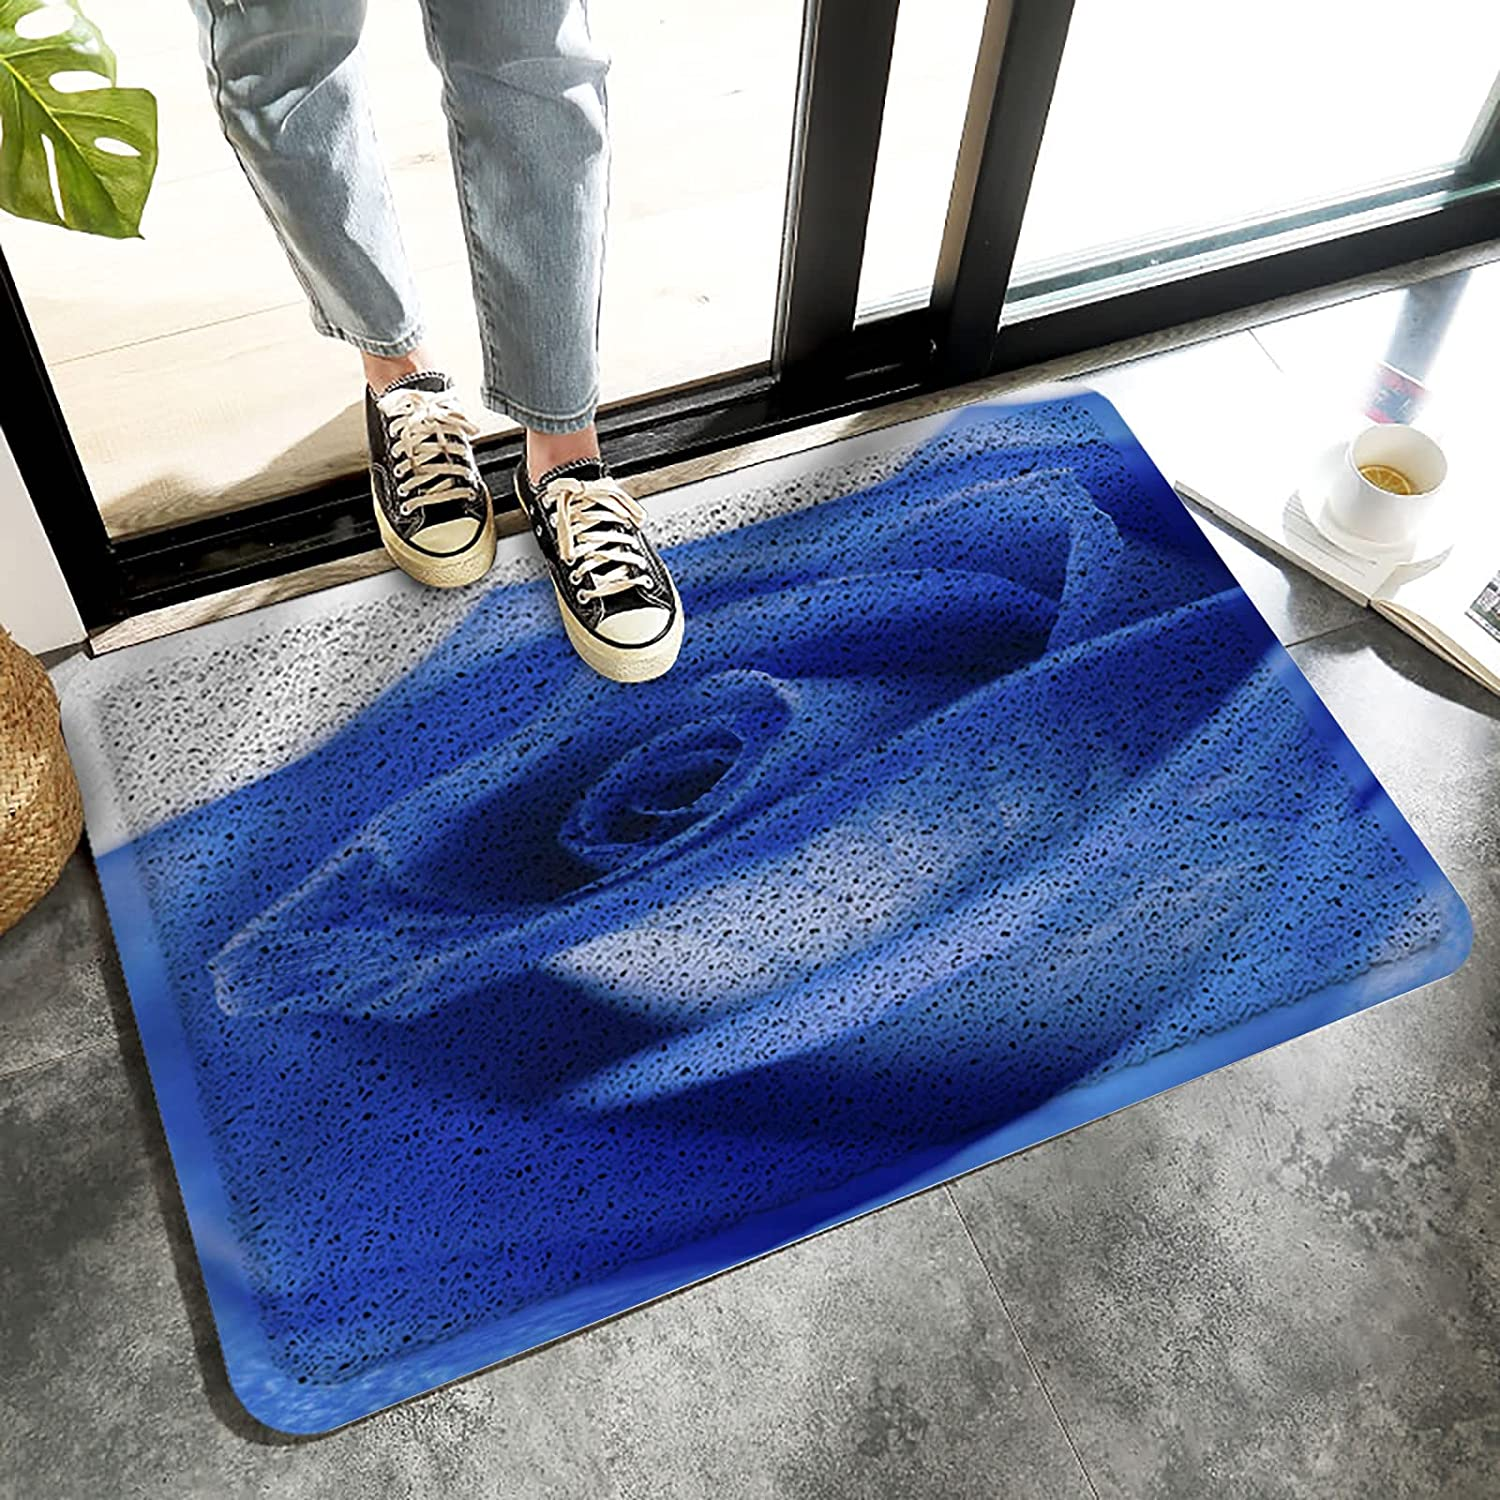 MuswannaA Front Door Welcome Mat Max Our shop OFFers the best service 71% OFF Entrance Duty Ru Heavy Non-Slip